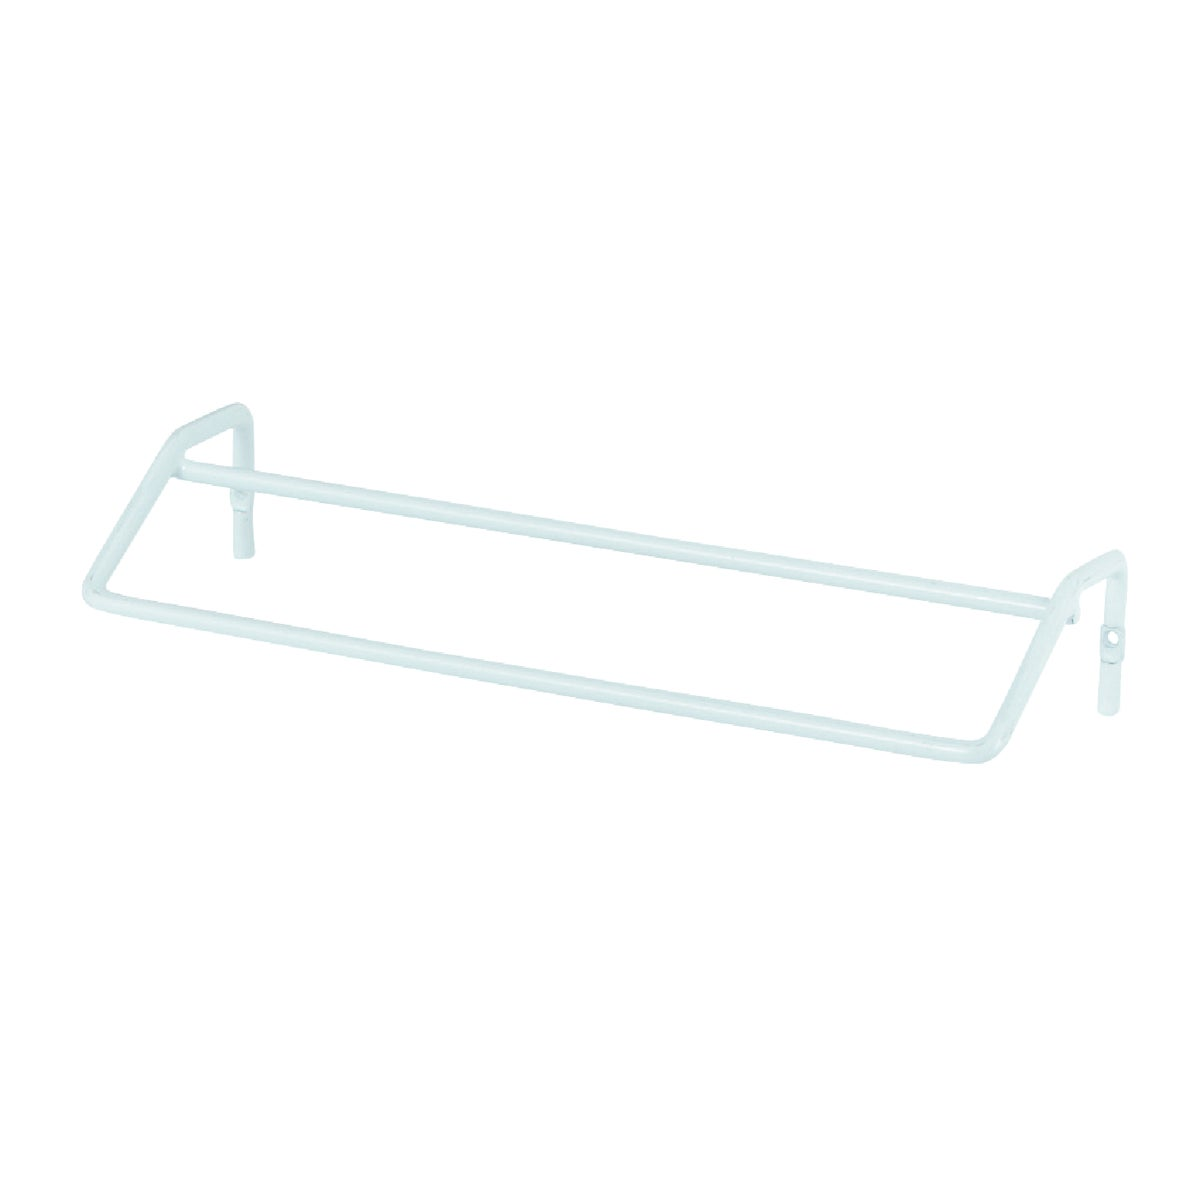 WHITE DOUBLE TOWEL BAR - 40310 by Panacea    Grayline